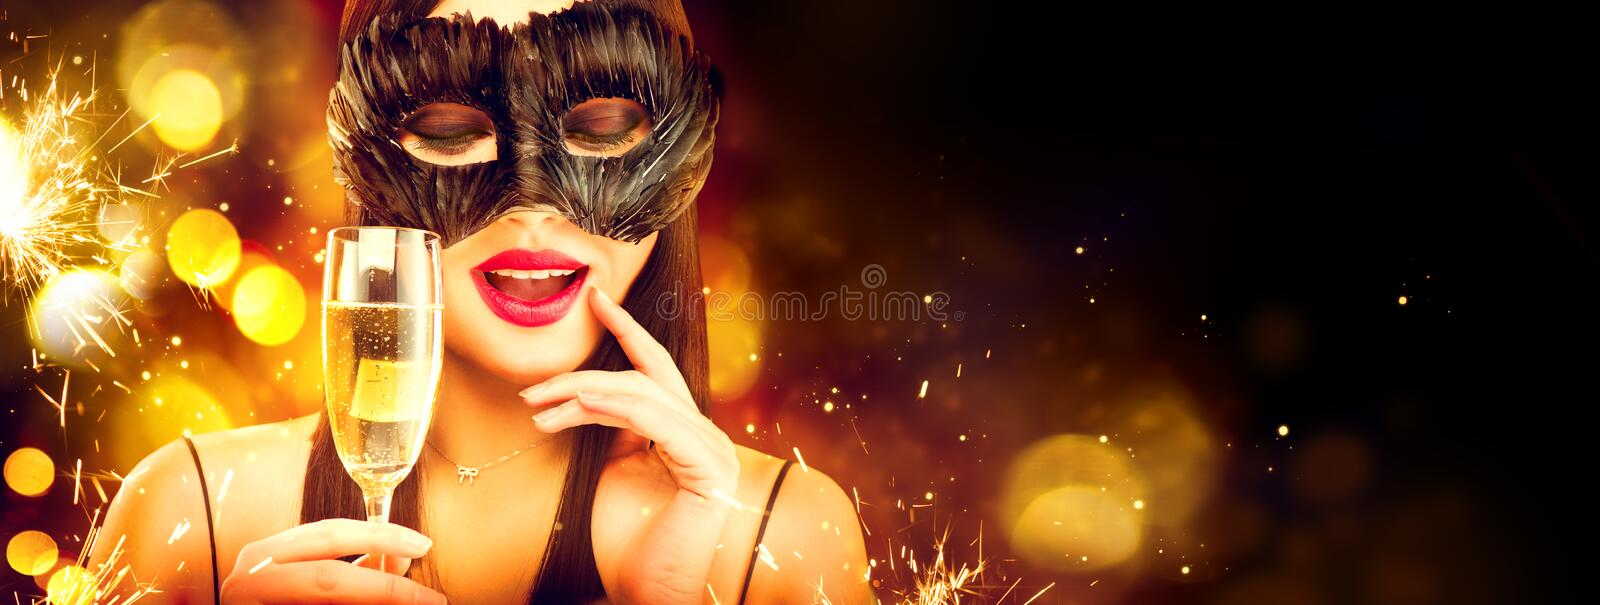 Christmas and New Year holiday celebration. Beauty woman celebrating with champagne, wearing carnival mask. Drinking champagne royalty free stock image